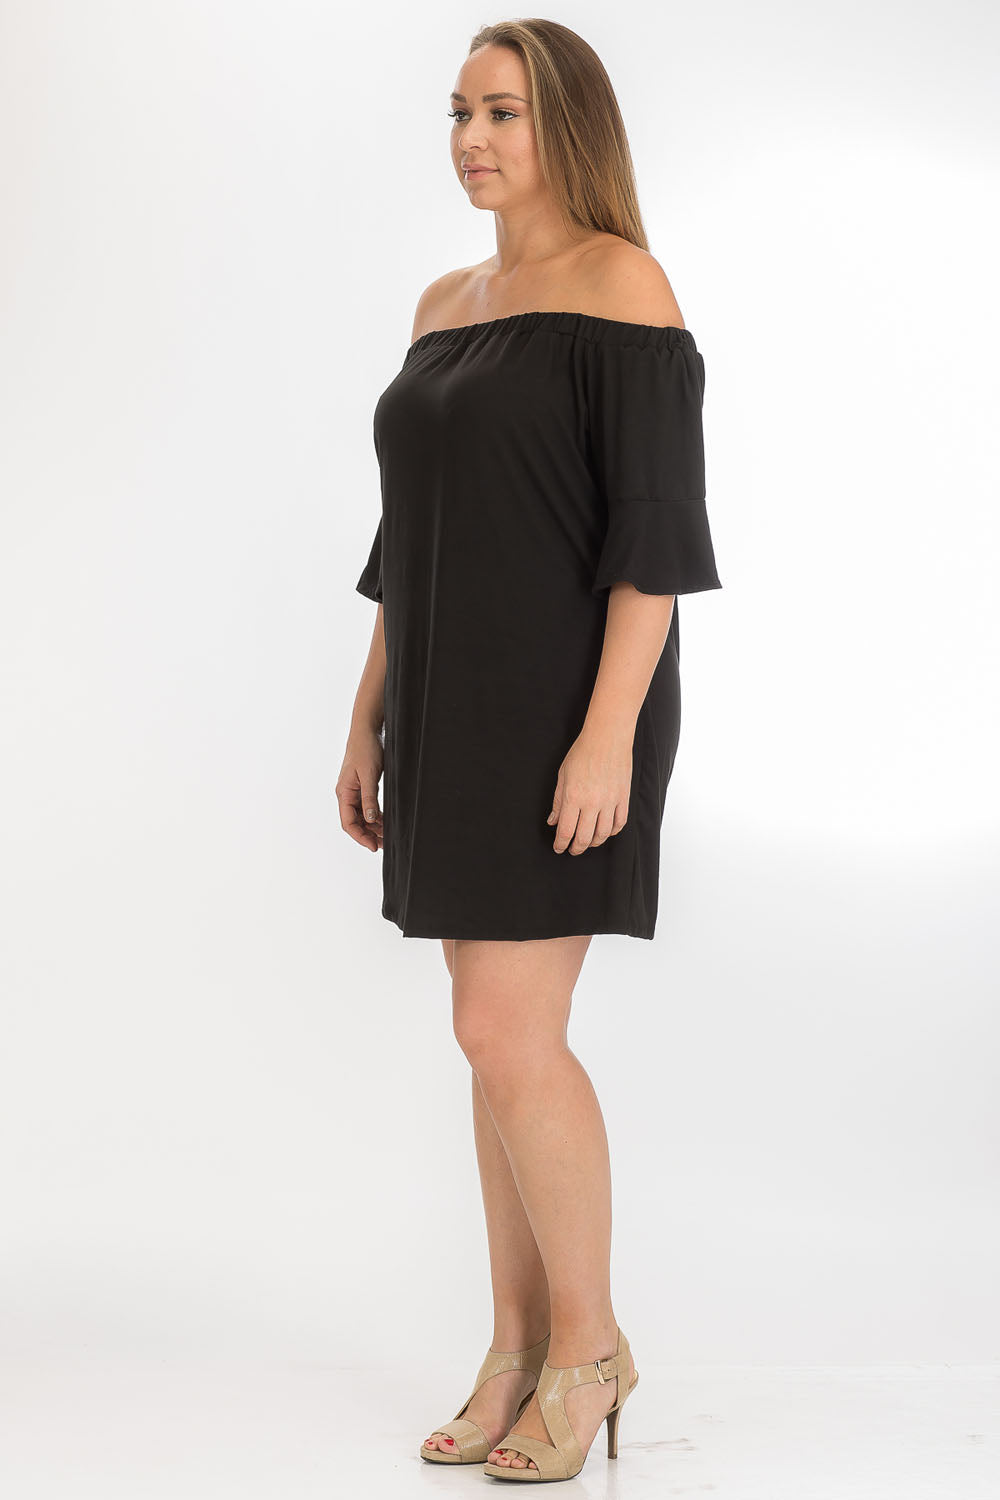 Dress - BD2156X (PLus Size) - Capella Apparel